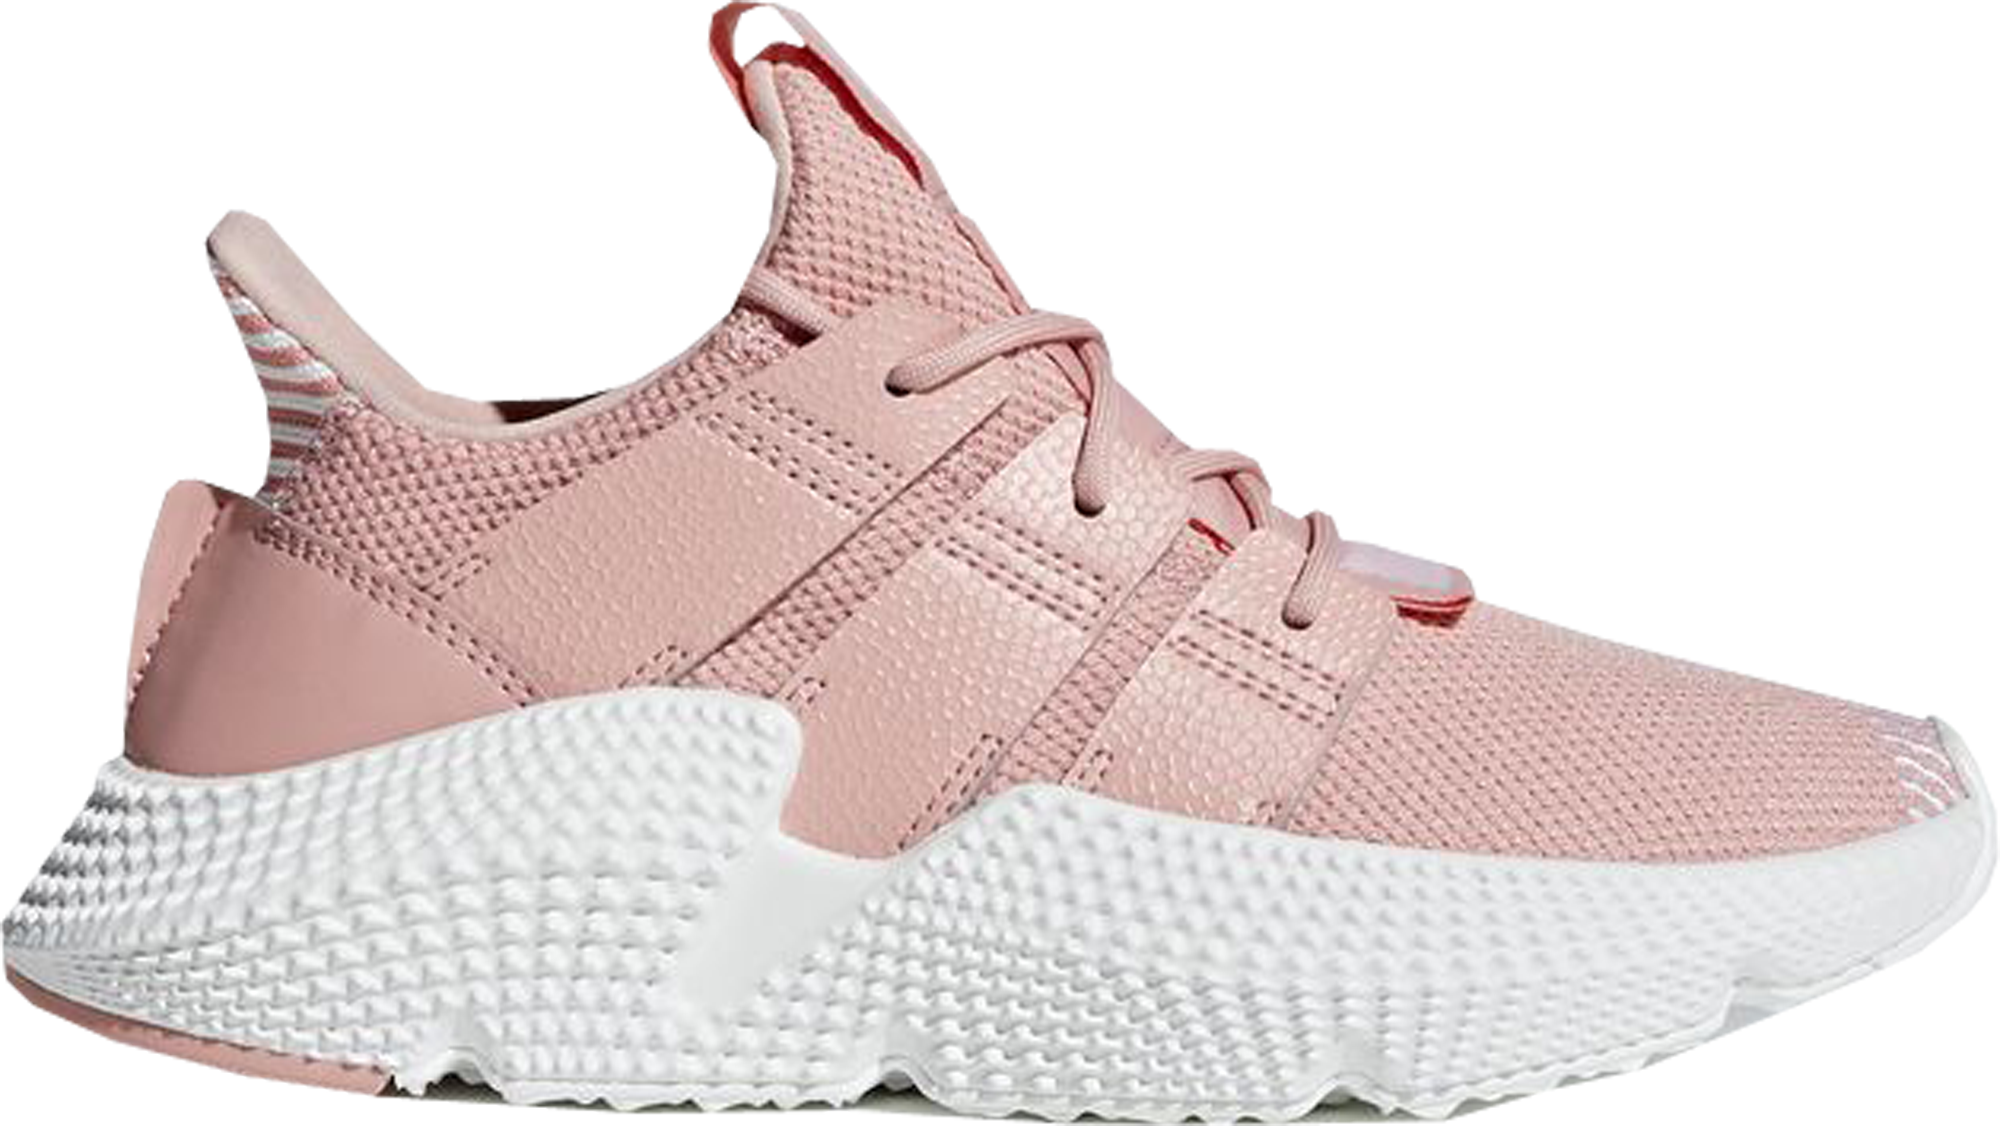 adidas Prophere Trace Pink (Youth) - B41881